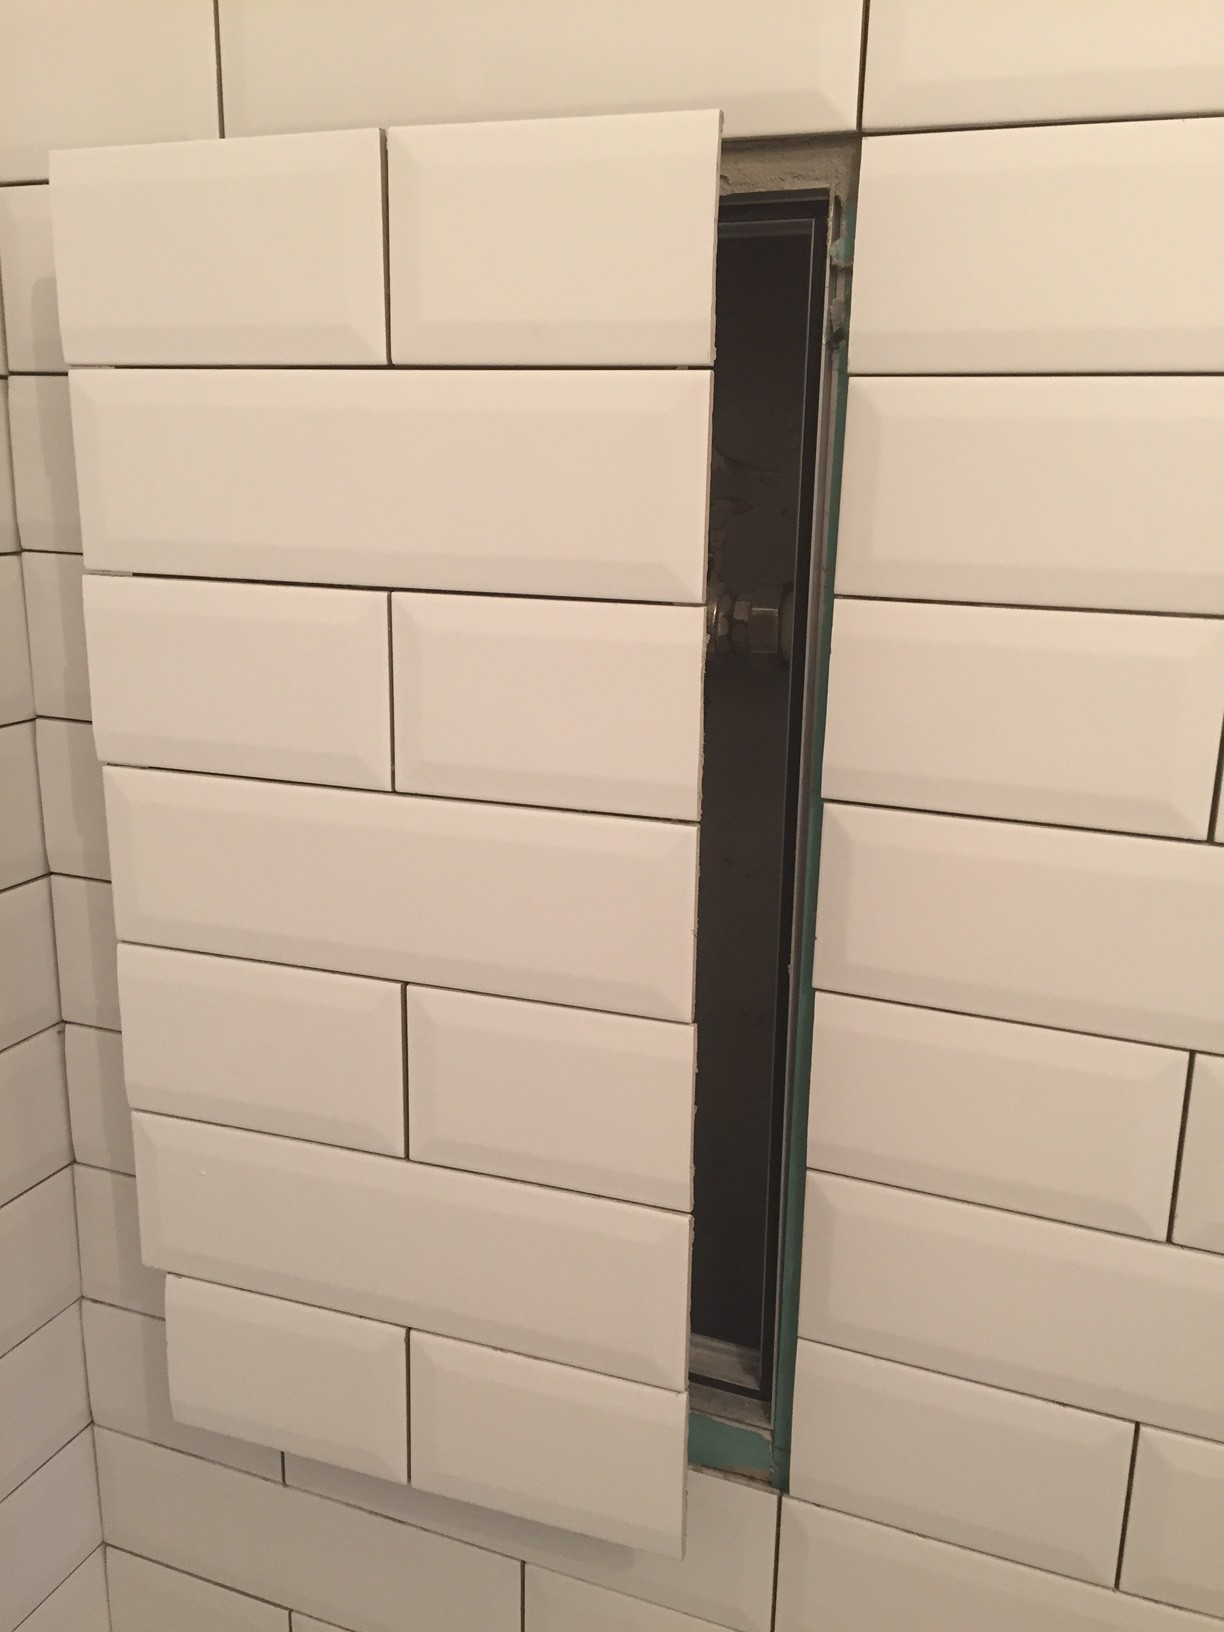 How to Make a Hidden Access Panel With Subway Tiles - L\' Essenziale